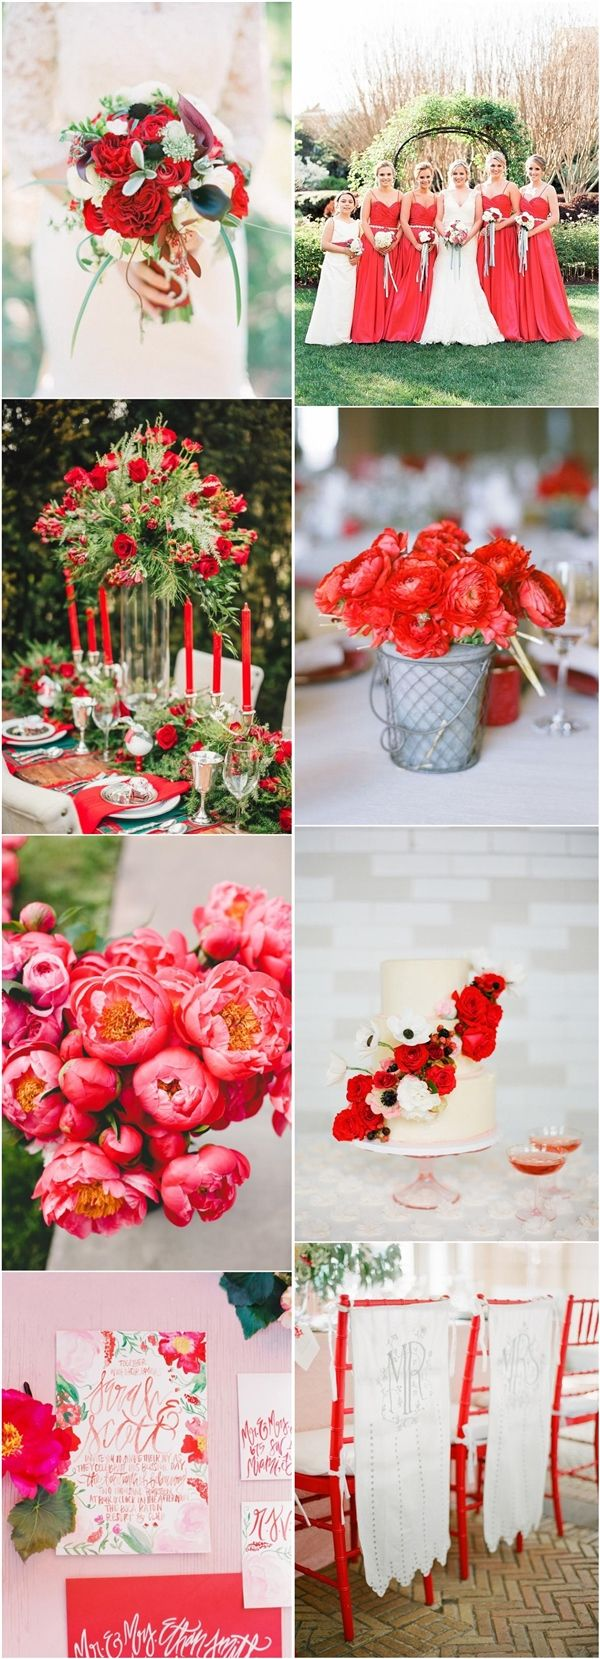 Wedding Color Trends 2016: Pantone Fiesta Red Wedding Ideas | http://www.deerpearlflowers.com/wedding-color-trends-2016-pantone-fiesta-red-wedding-ideas/